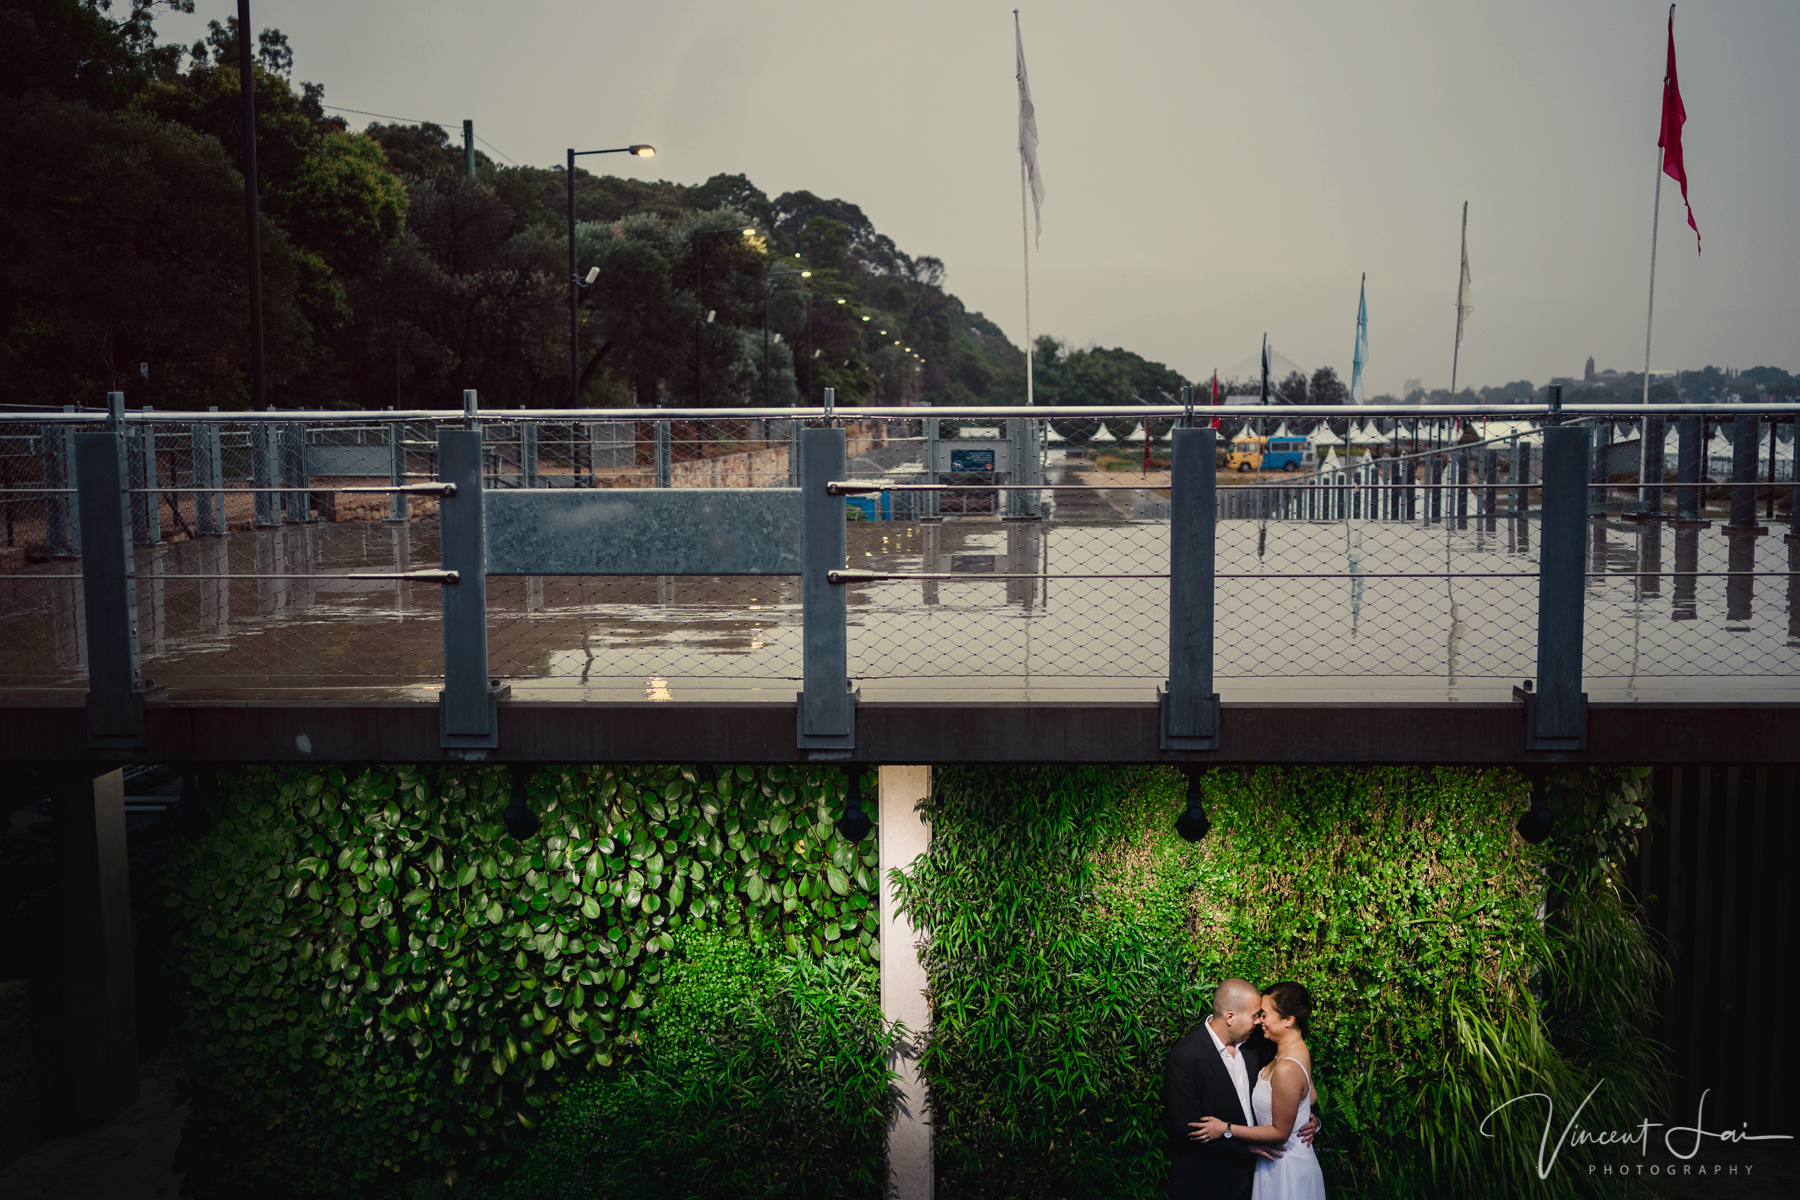 Sydney Prewedding Photography